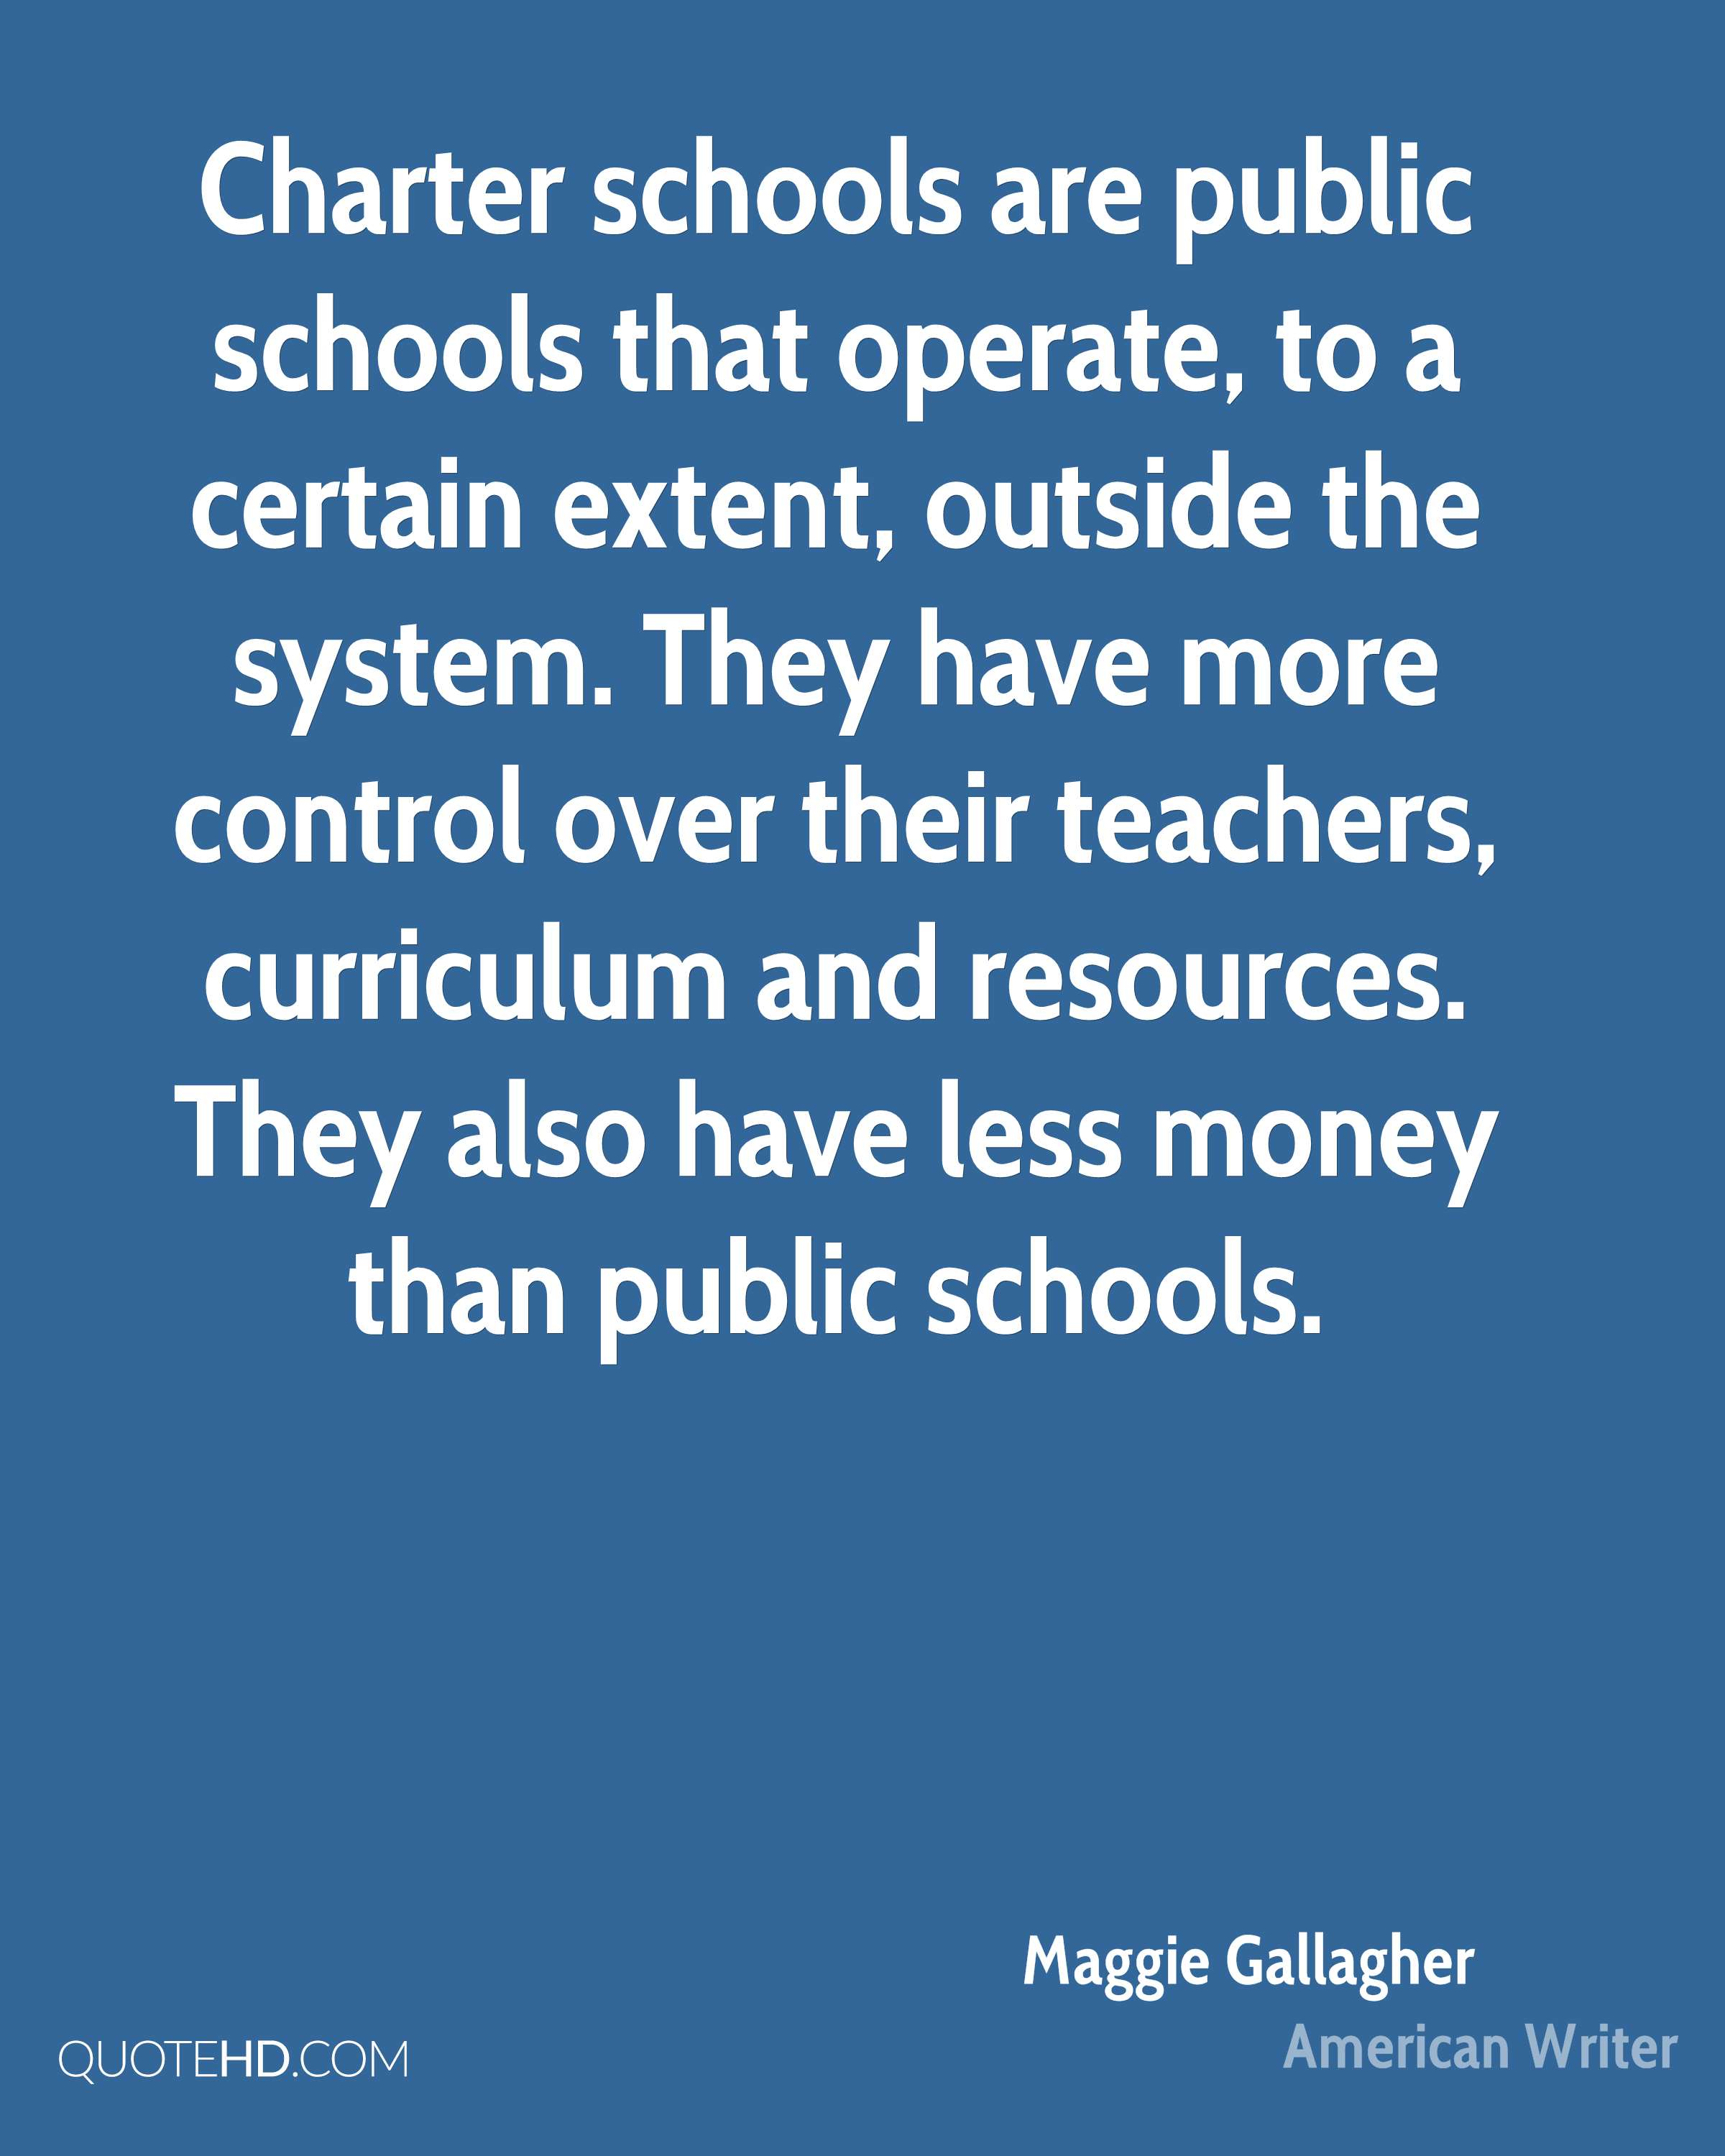 Charter schools are public schools that operate, to a certain extent, outside the system. They have more control over their teachers, curriculum and resources. They also have less money than public schools.